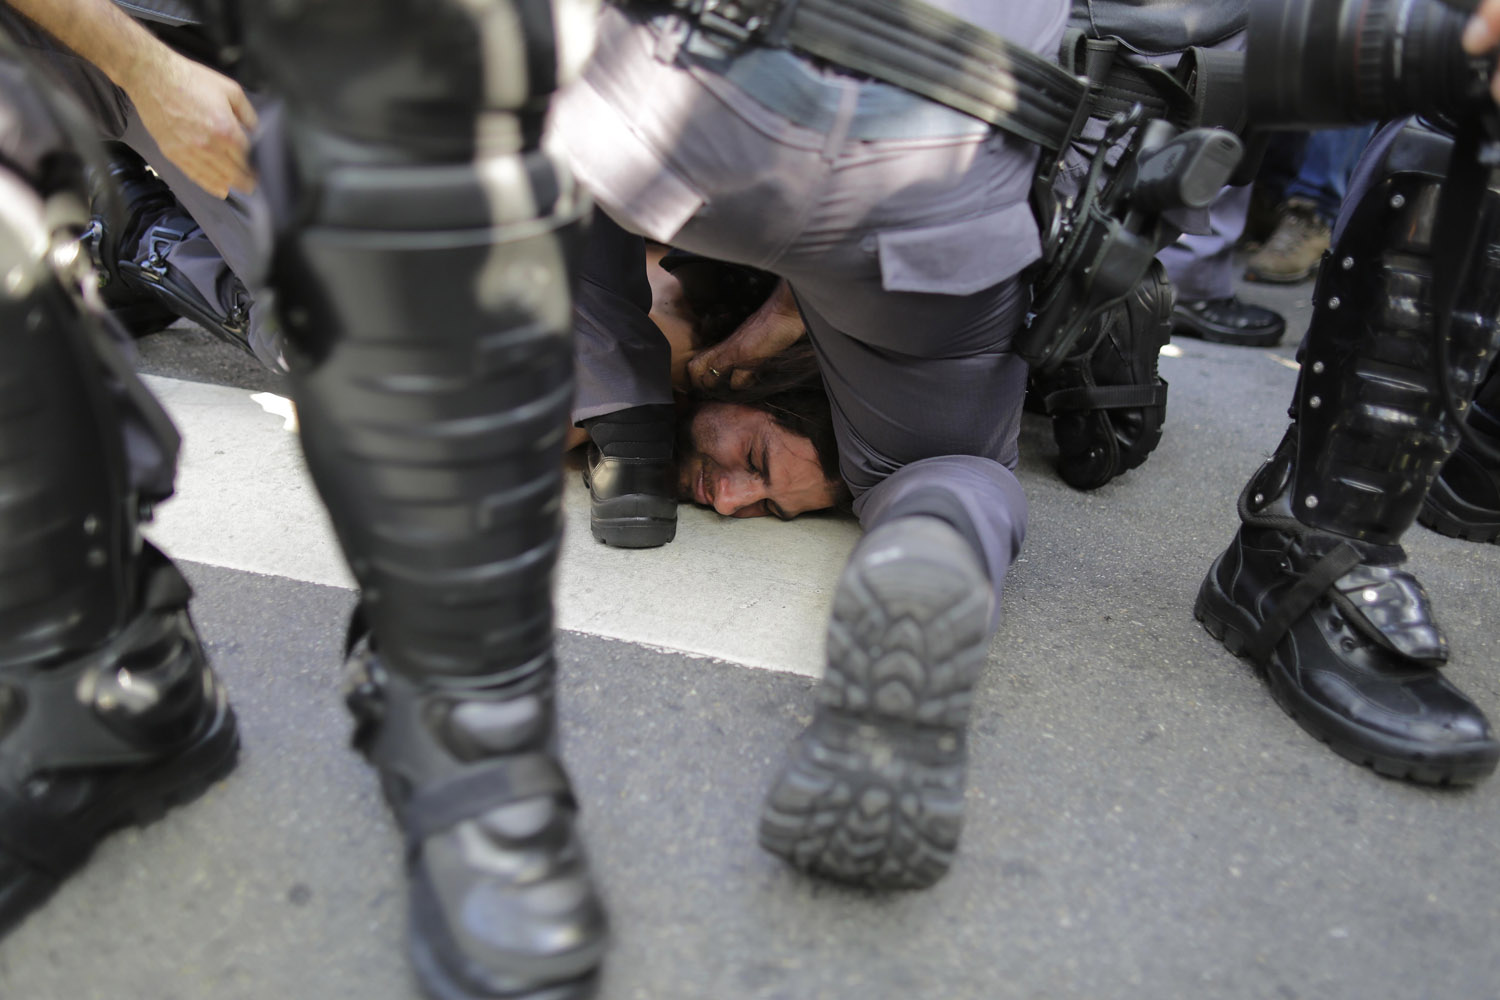 Jun. 12, 2014. A protester is detained by police during a demonstration demanding better public services and protesting the money spent on the World Cup soccer tournament in Sao Paulo, Brazil.